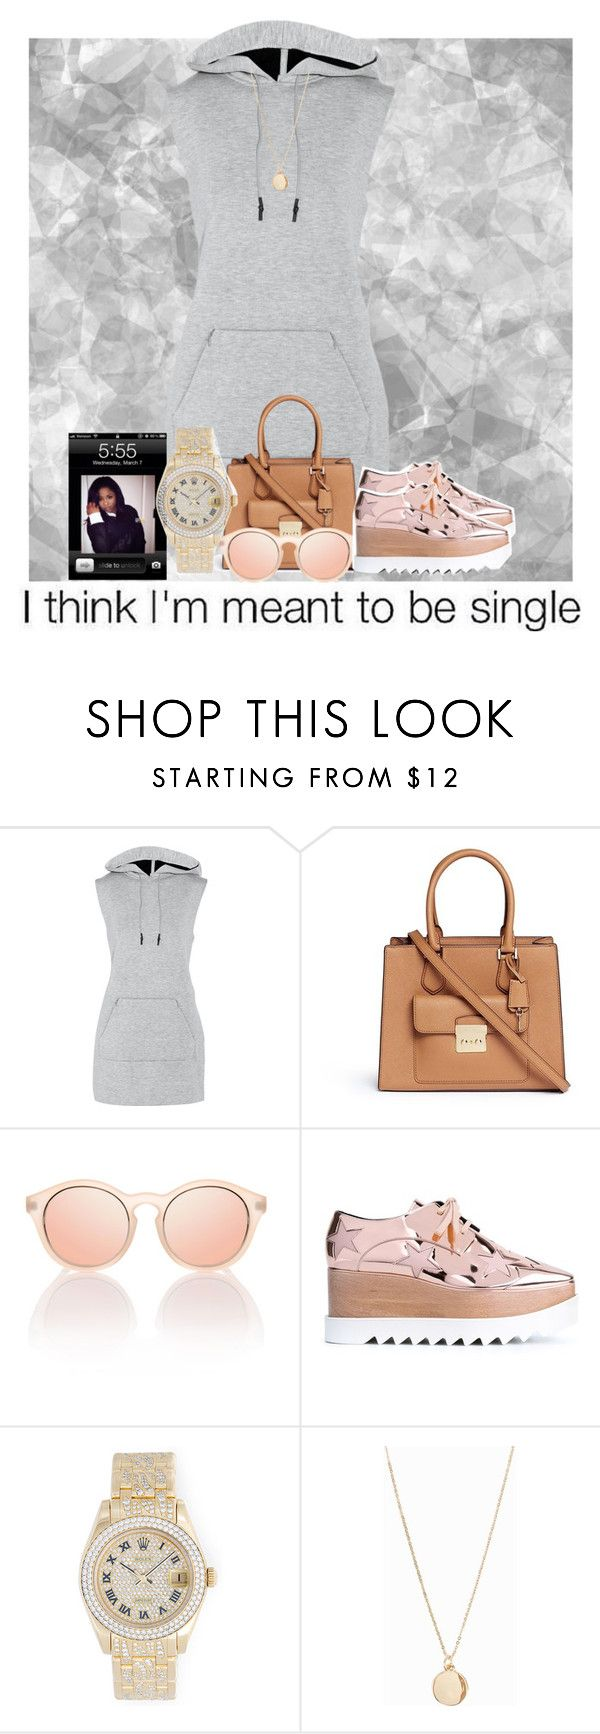 """SINGLE"" by royal-t-1 ❤ liked on Polyvore featuring T By Alexander Wang, Michael Kors, STELLA McCARTNEY, Rolex and NLY Accessories"